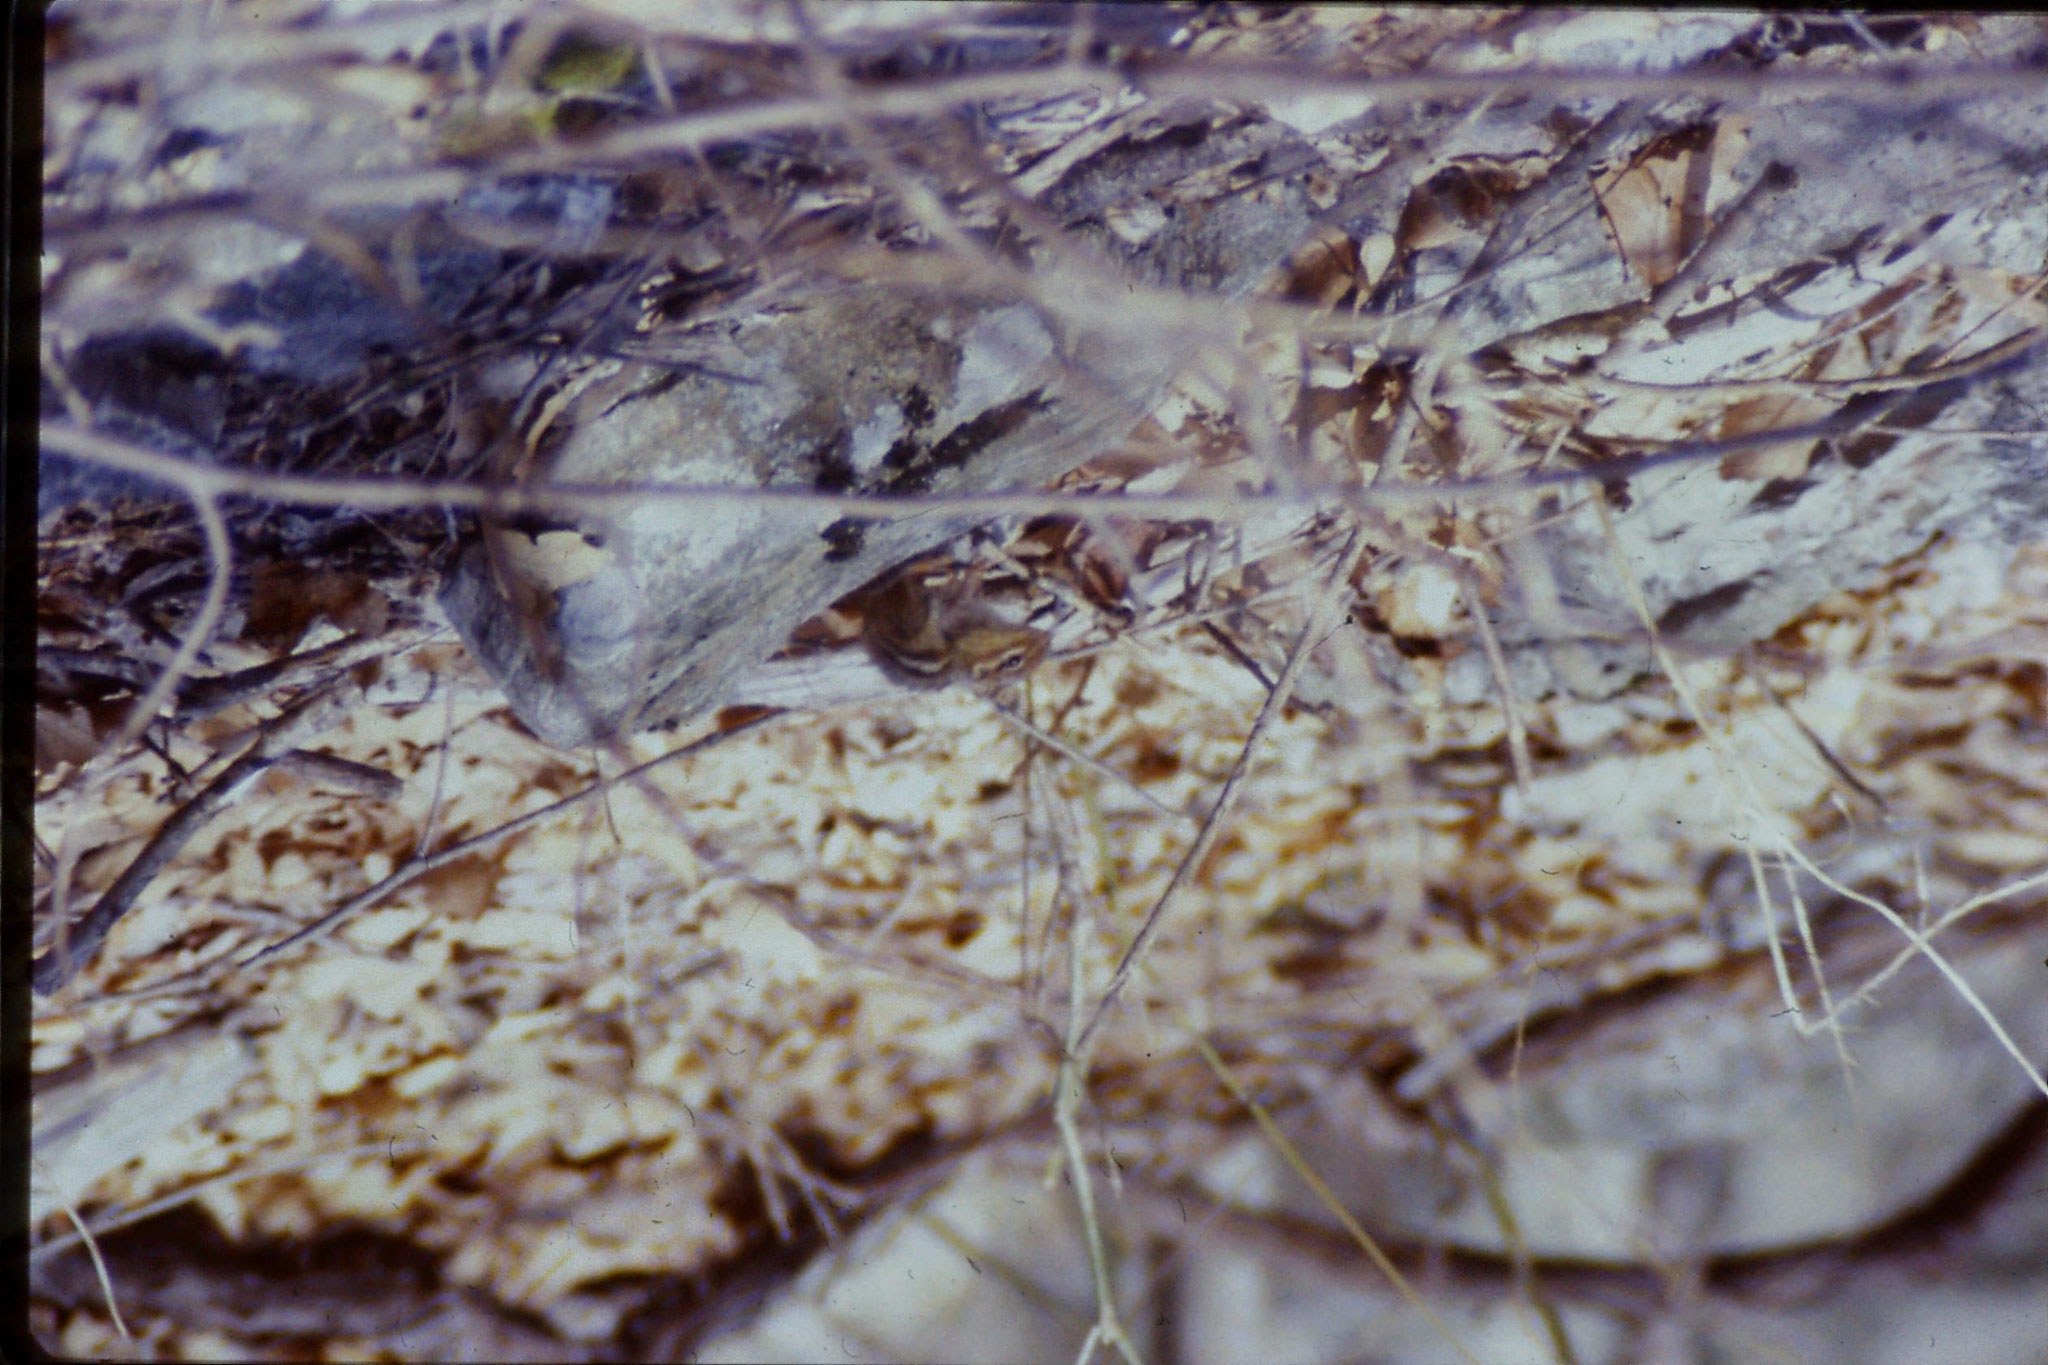 21/3/1990: 34: Seneca Rocks WV Eastern chipmunk